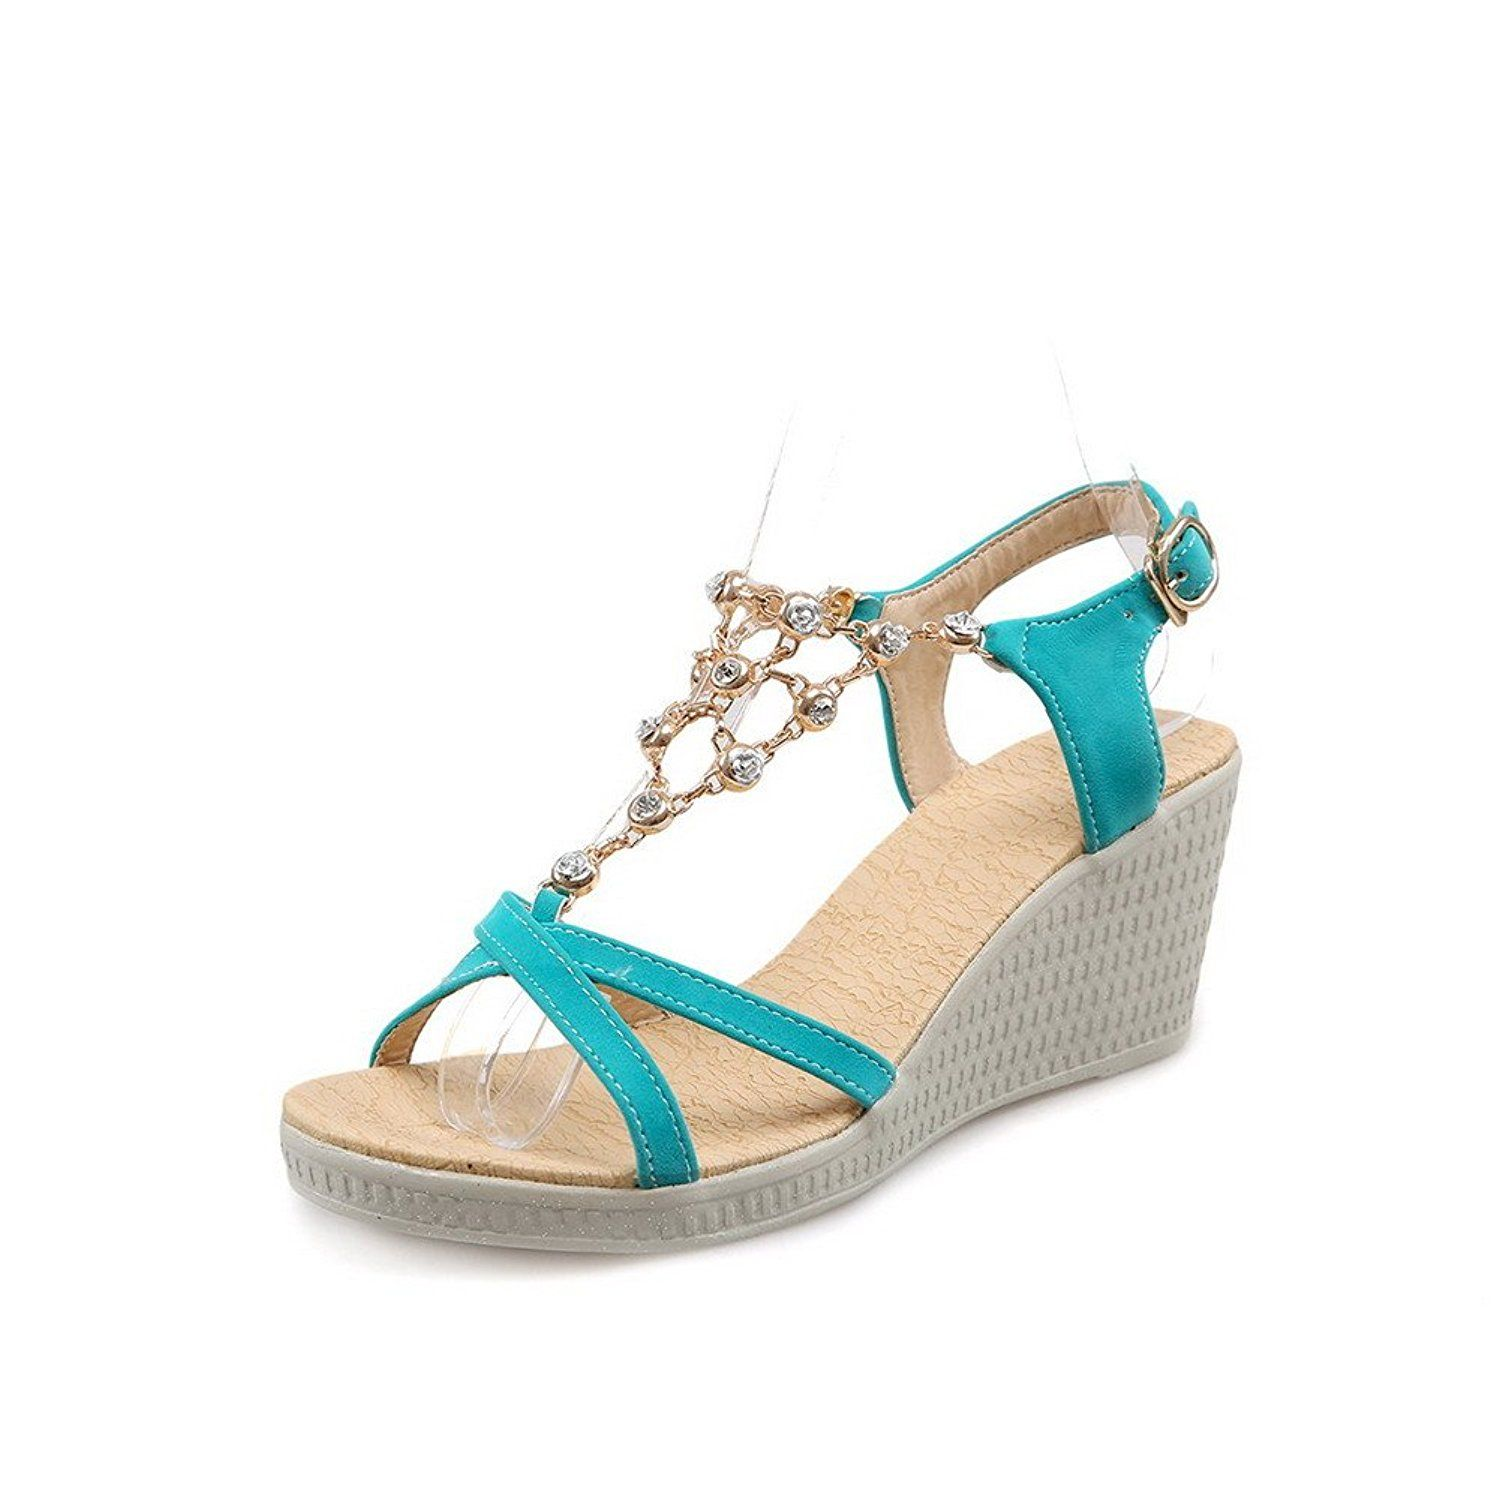 WeenFashion Women's Open Toe Buckle Pu Solid Kitten Heels Wedges-Sandals *** For more information, visit image link.